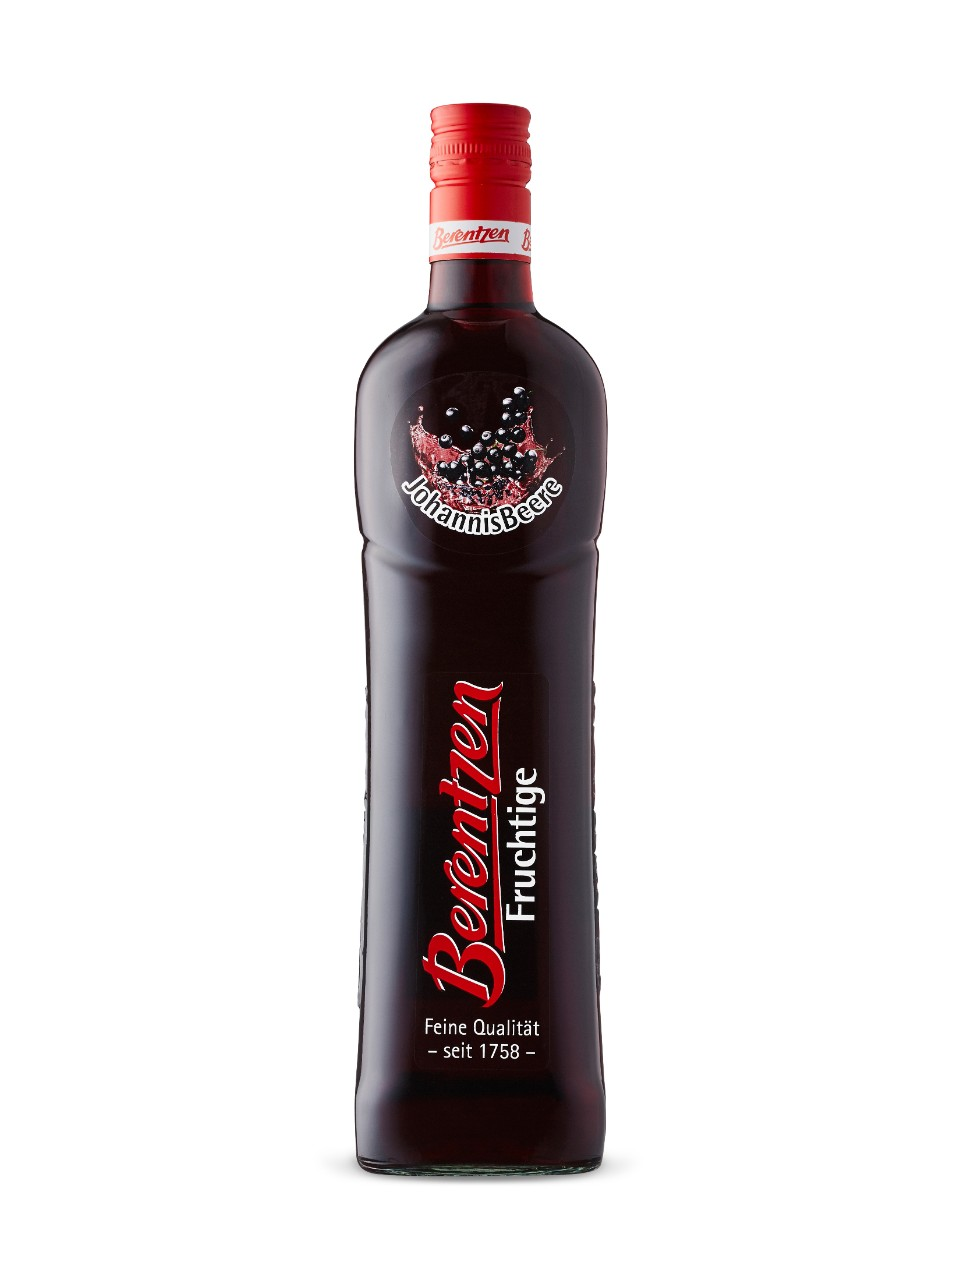 Image for Berentzen Johannisbeere Black Currant from LCBO